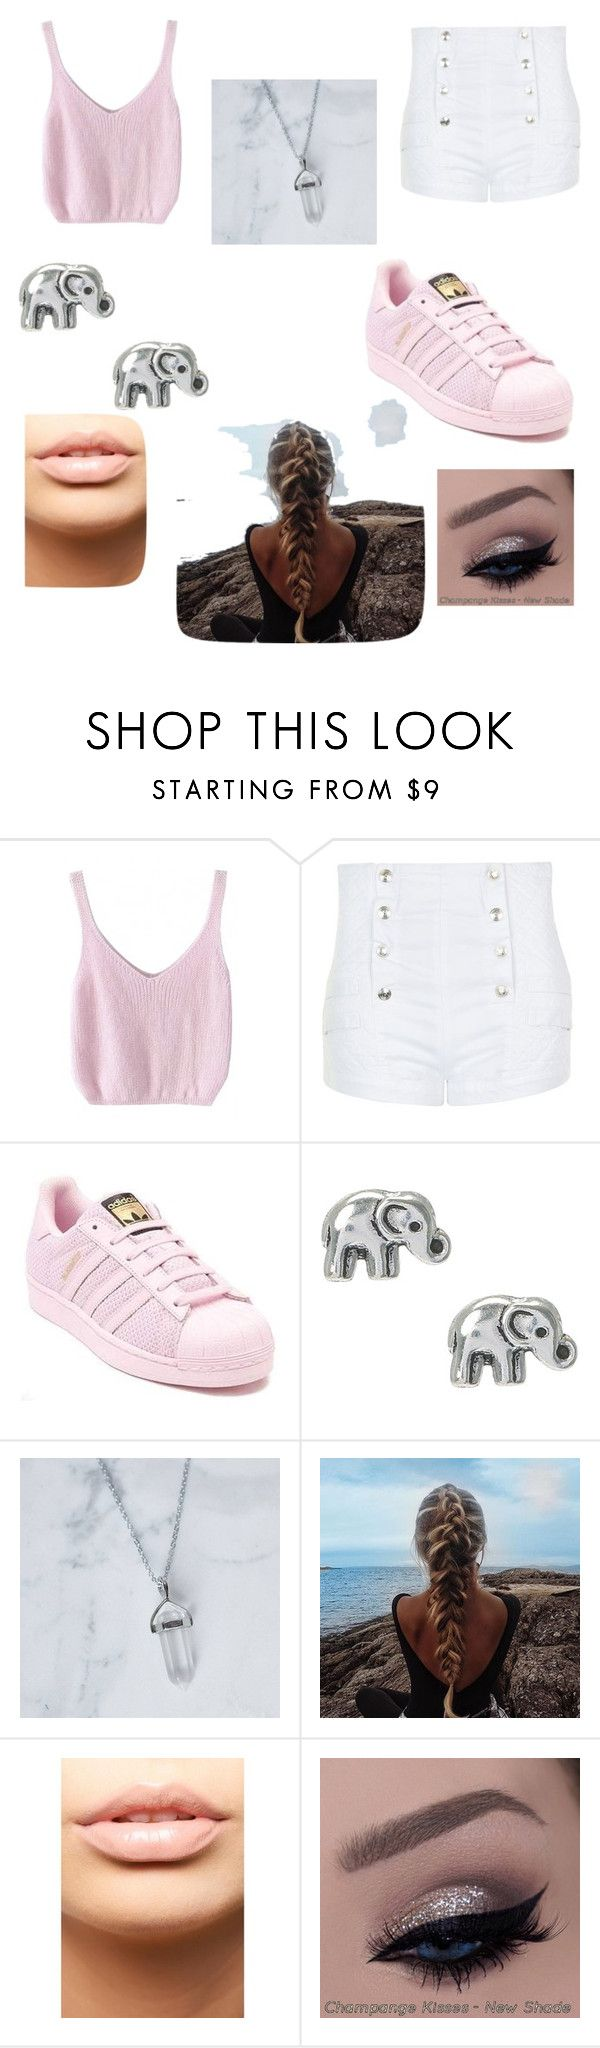 """Cute To Da Bone"" by milleoli000 ❤ liked on Polyvore featuring interior, interiors, interior design, home, home decor, interior decorating, WithChic, Pierre Balmain, adidas and MDMflow"